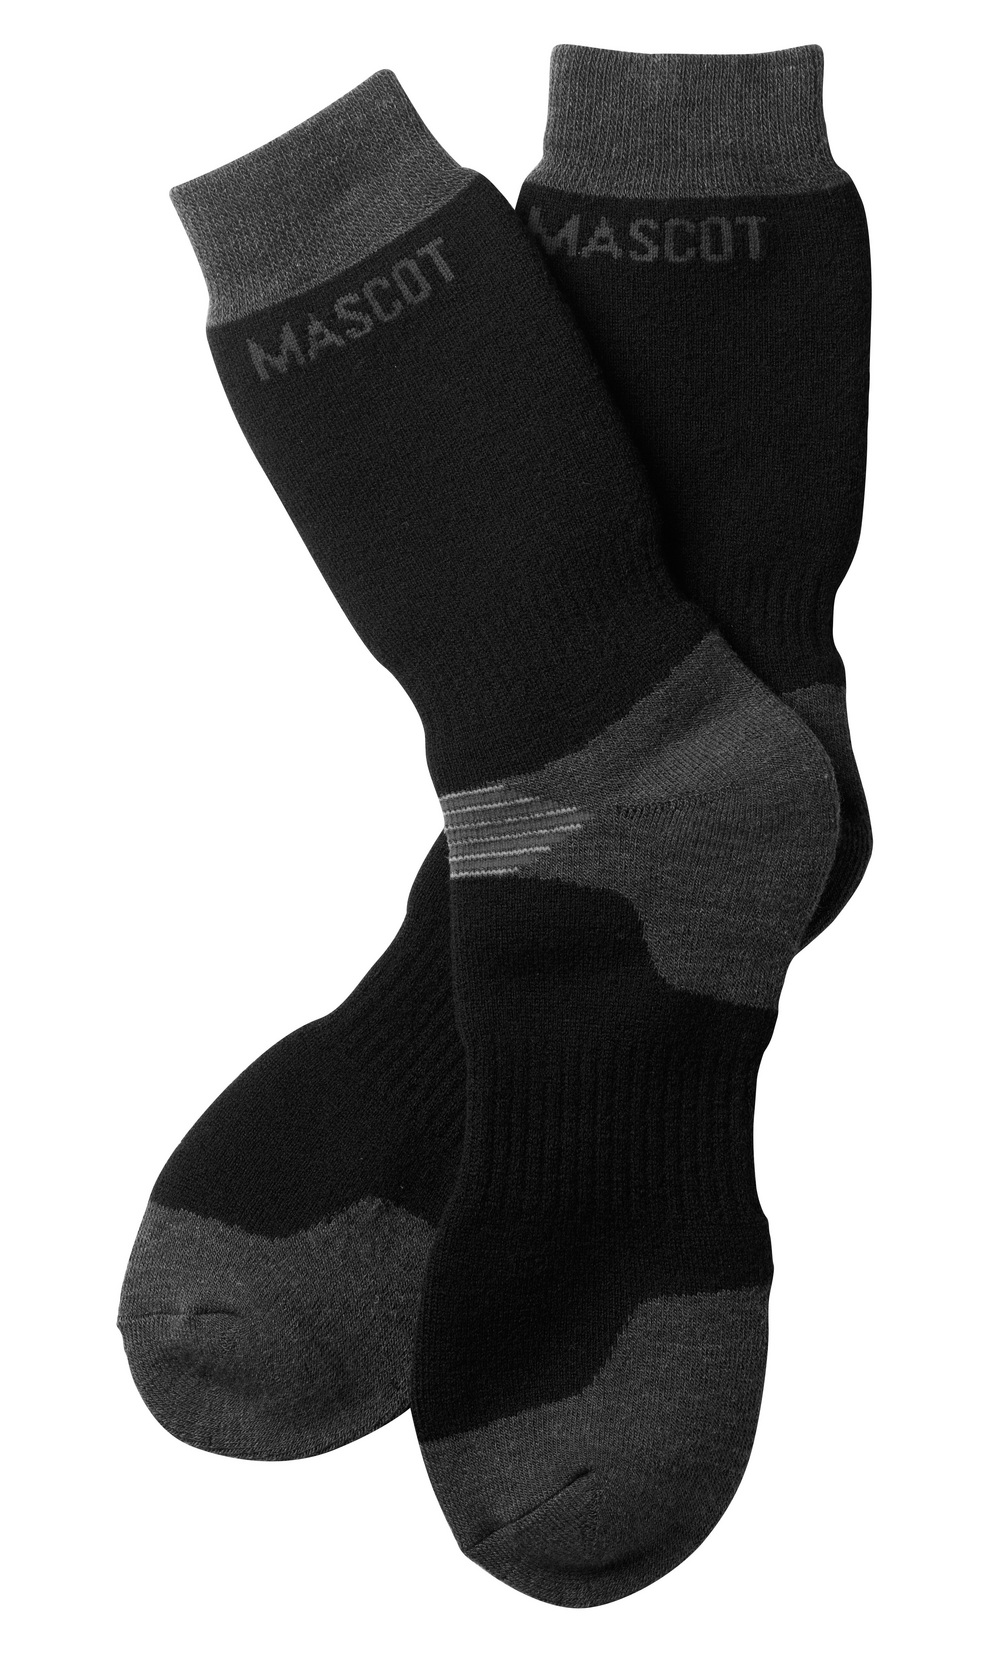 50404-876-0918 Socks - black/dark anthracite